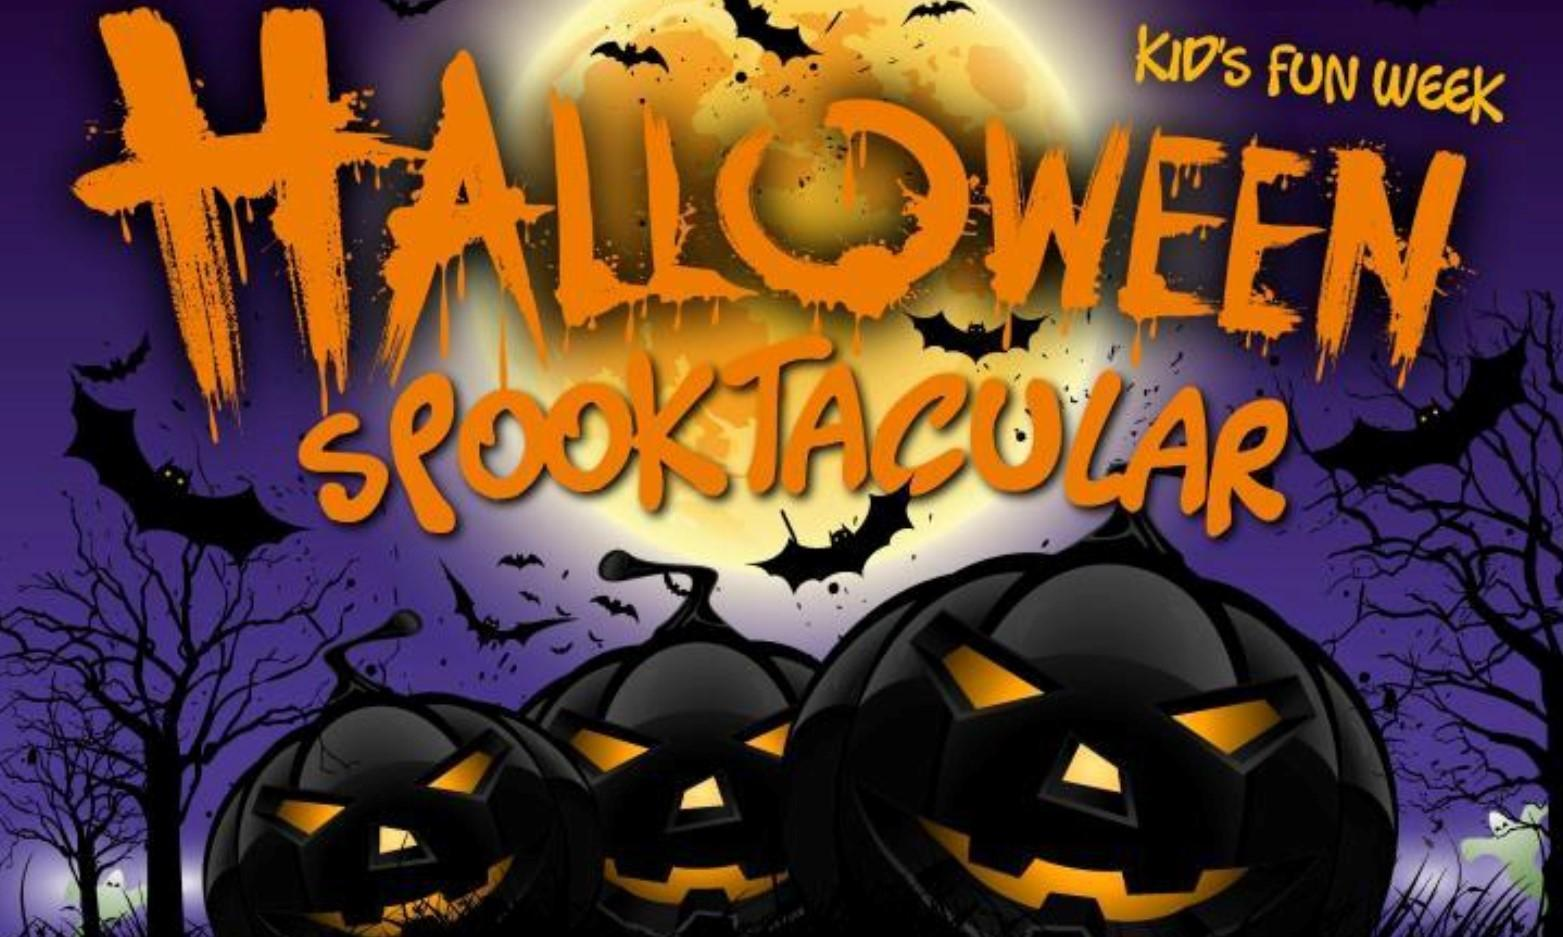 Halloween Spooktacular Kid's Fun Week at RSPCA Llys Nini